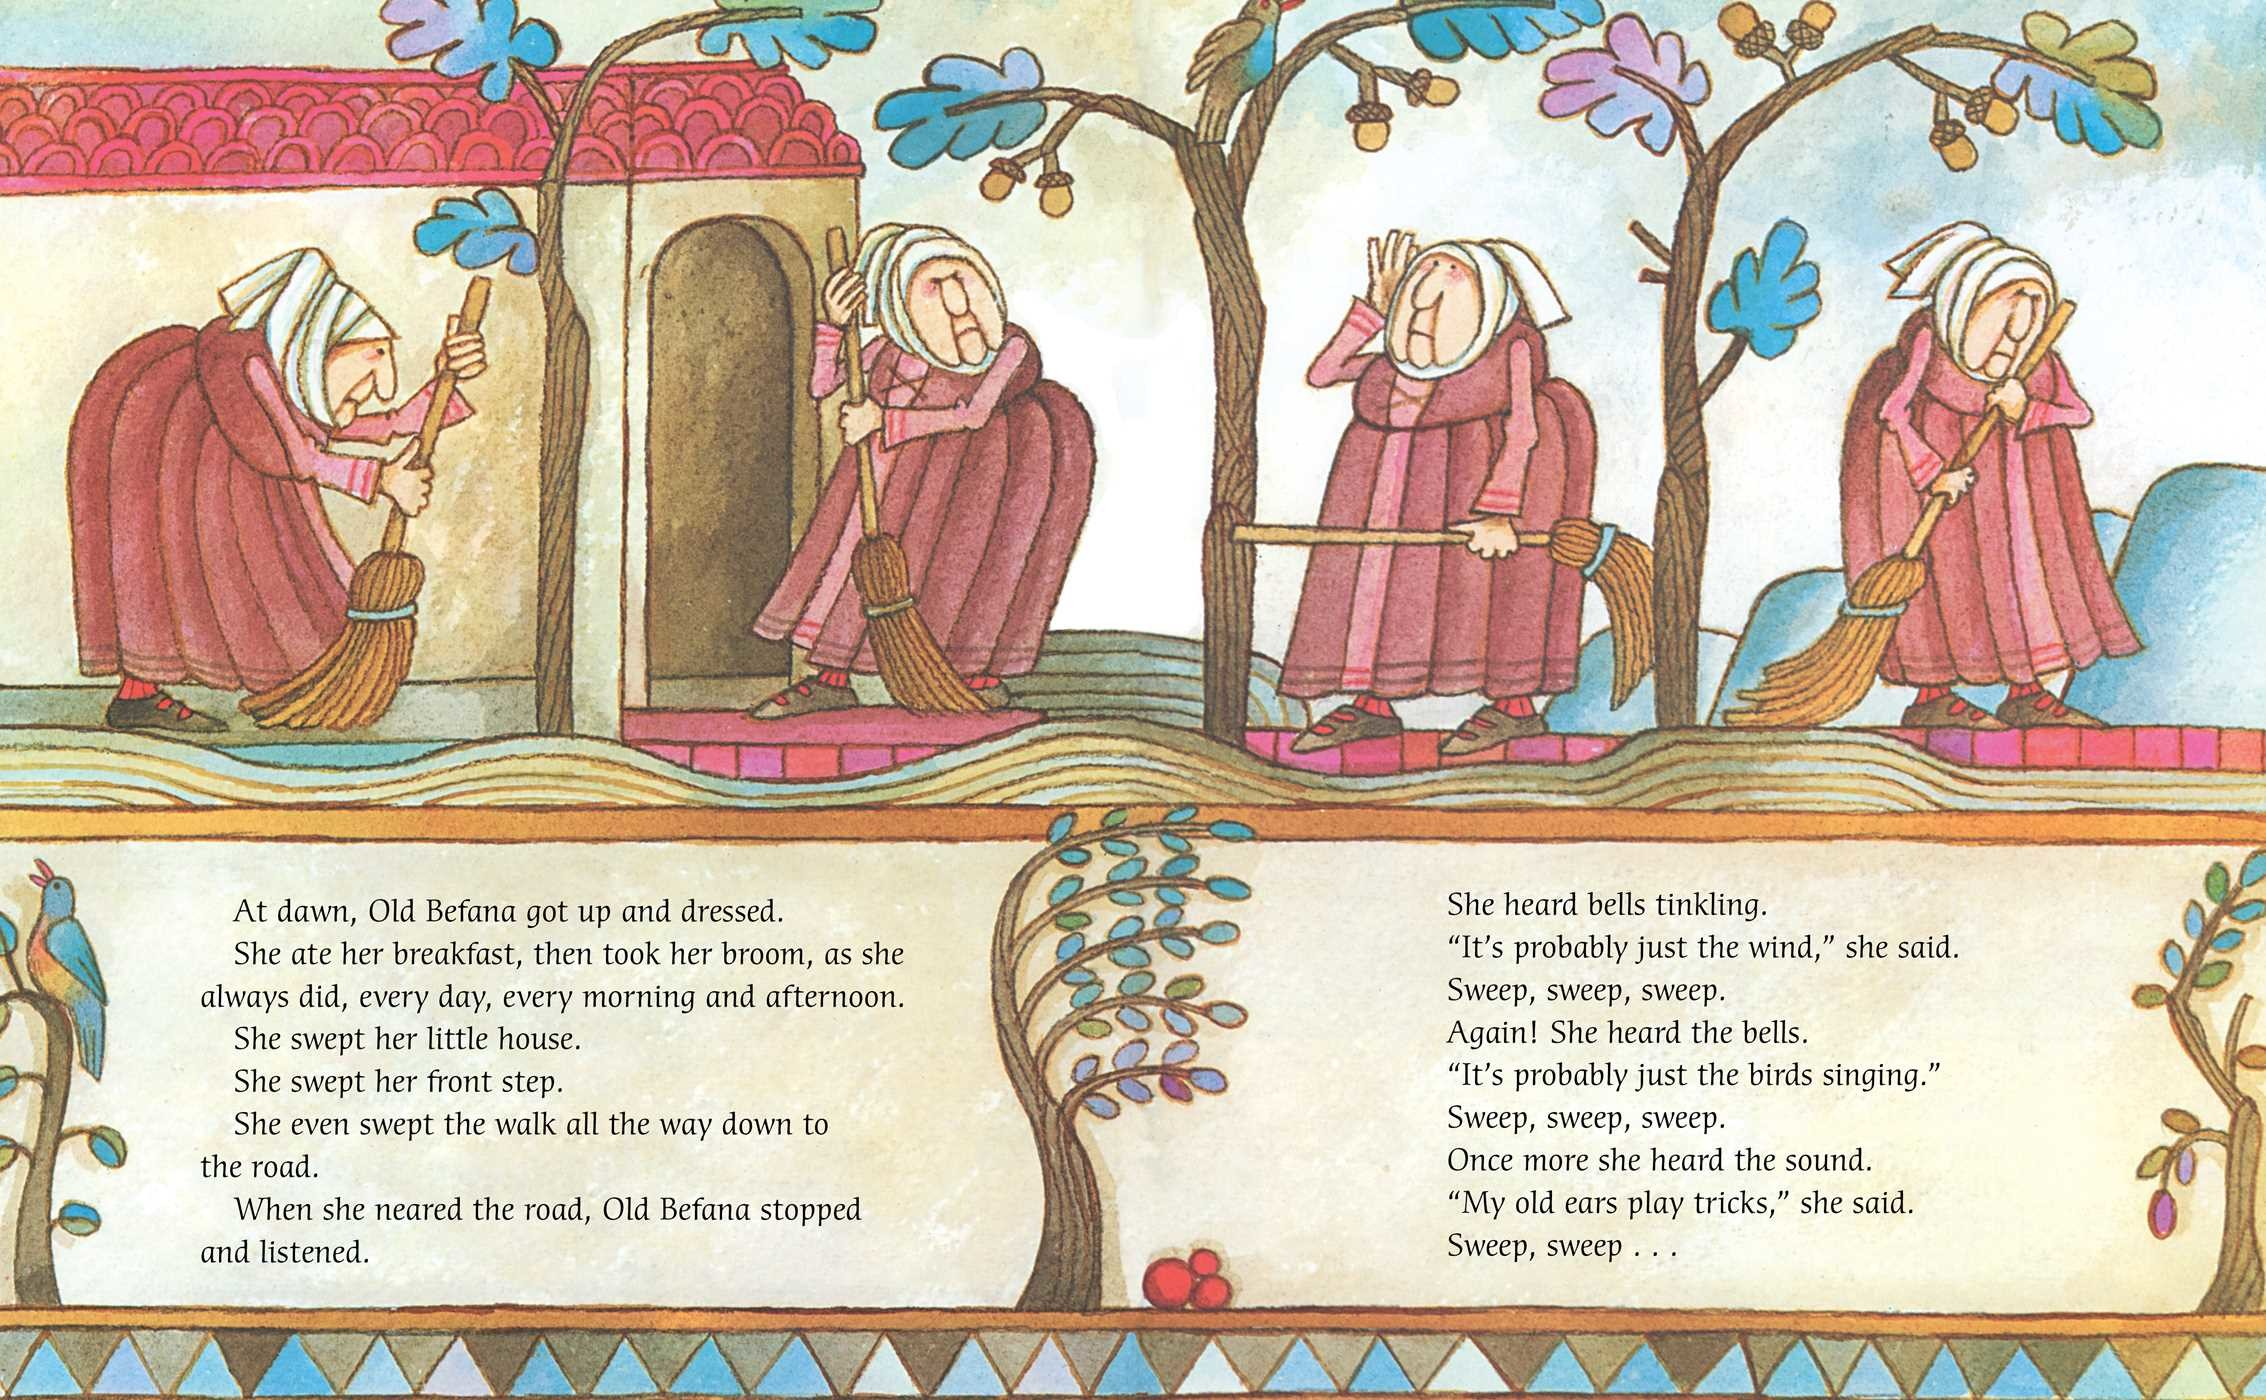 The legend of old befana 9781481477635.in05